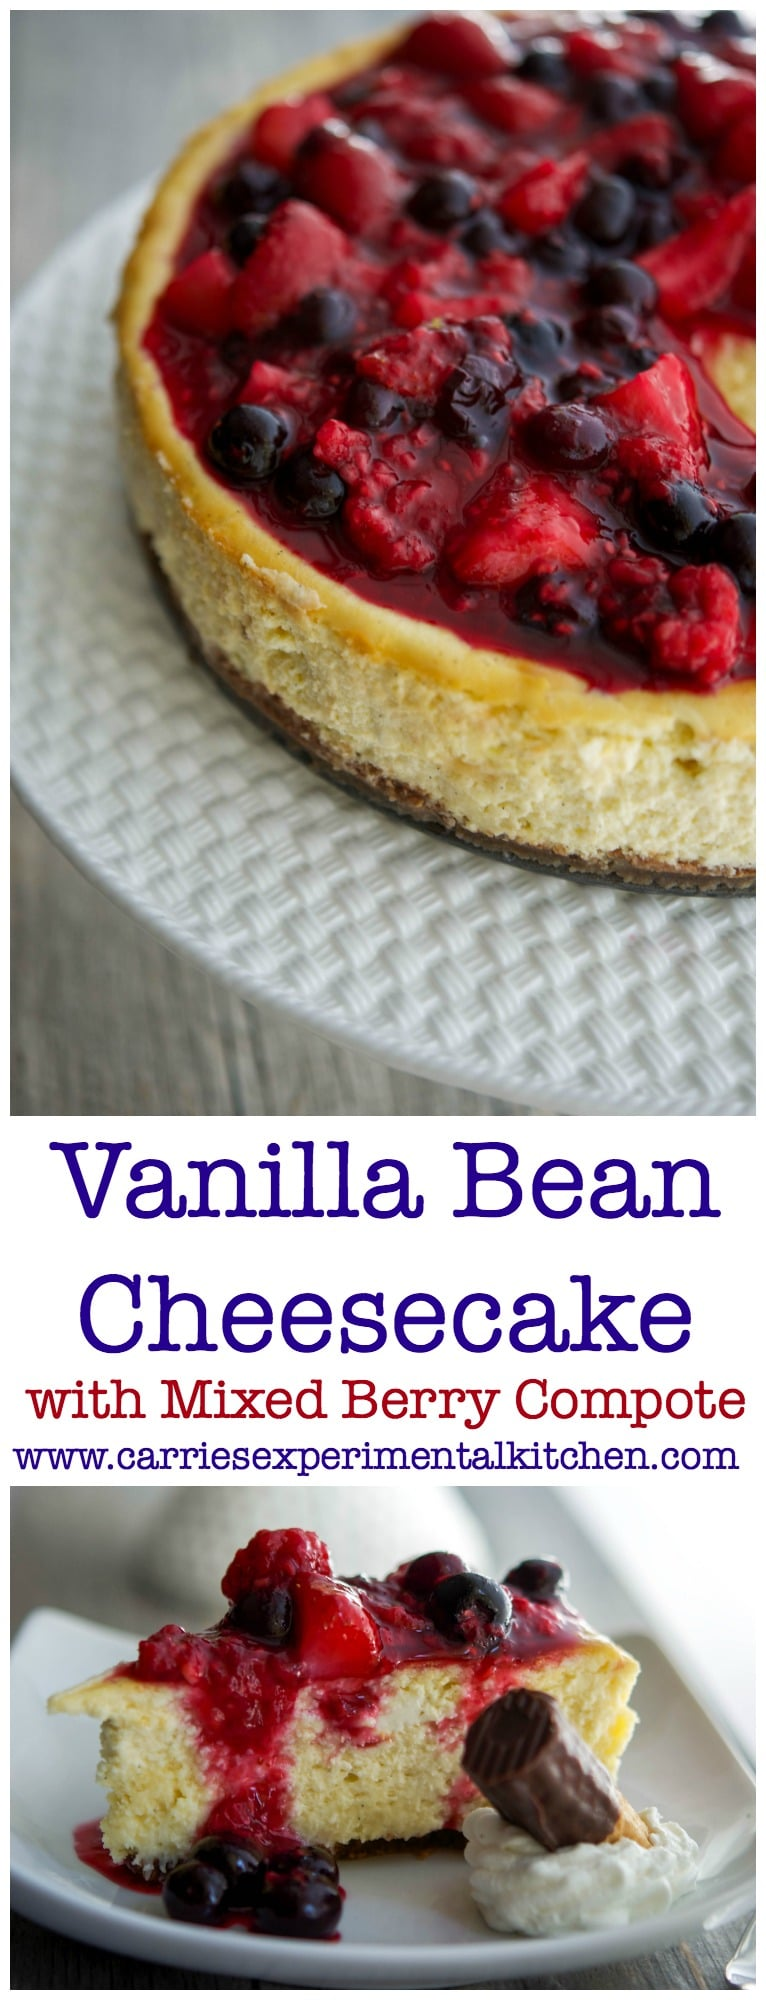 This Vanilla Bean Cheesecake made with cream cheese, Madagascar vanilla extract, vanilla beans, eggs, and sugar; then topped with a compote of fresh raspberries, strawberries and blueberries. #dessert #cheesecake #berries